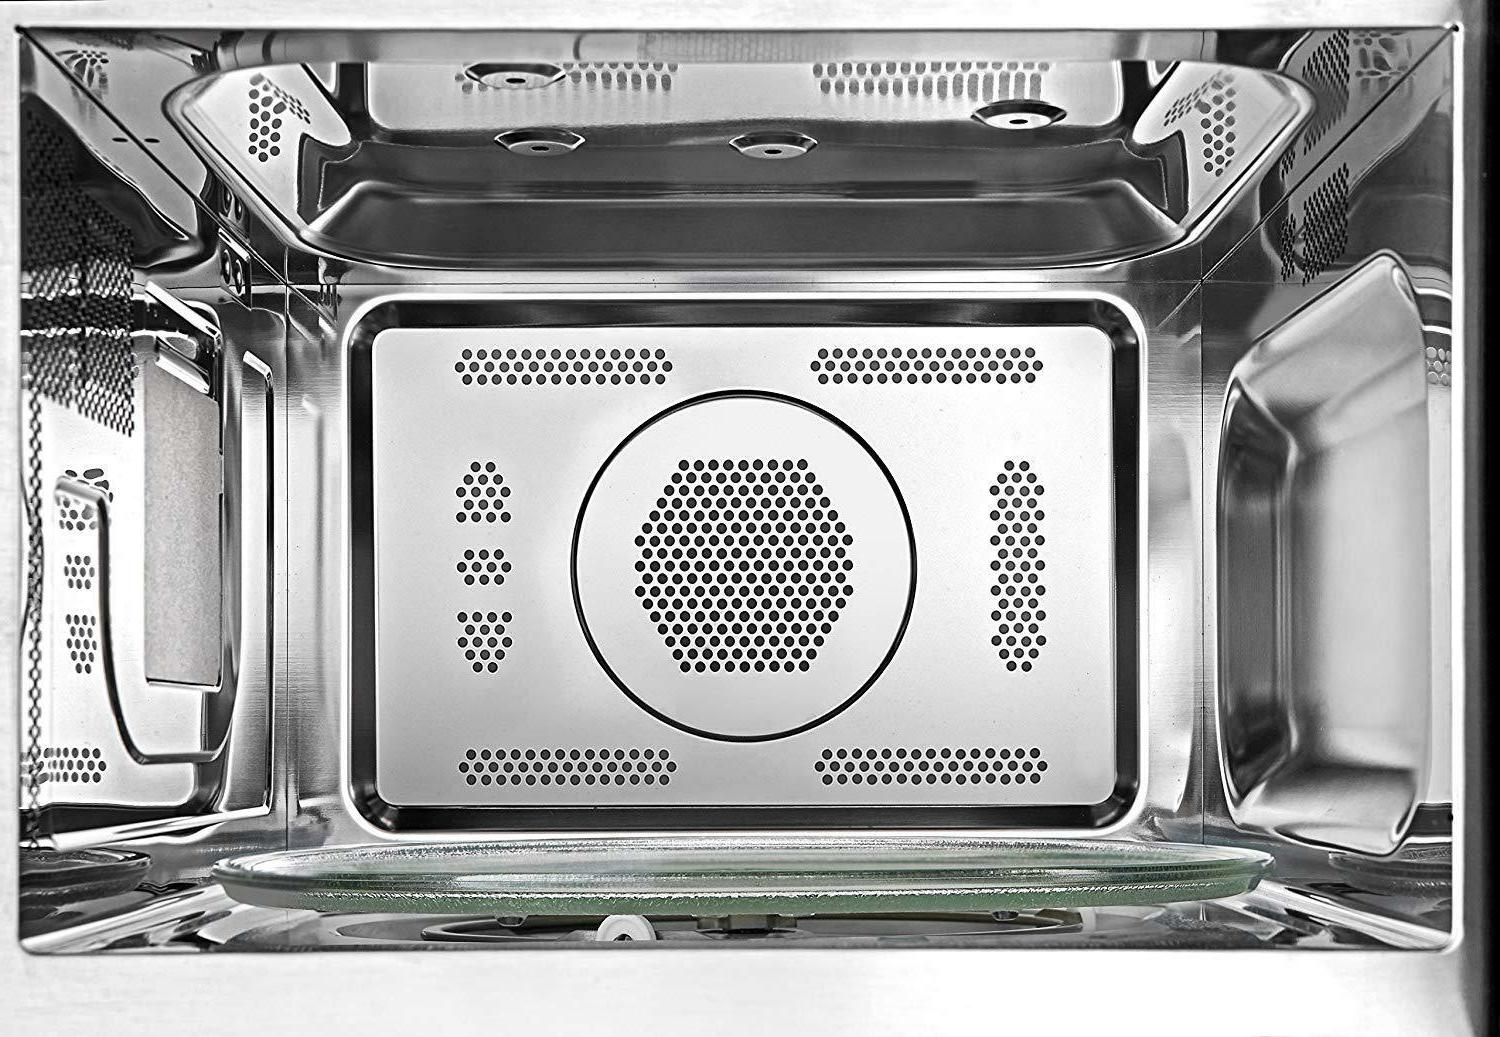 Combination Convection Microwave Oven Stainless Steel LED Dorm Room